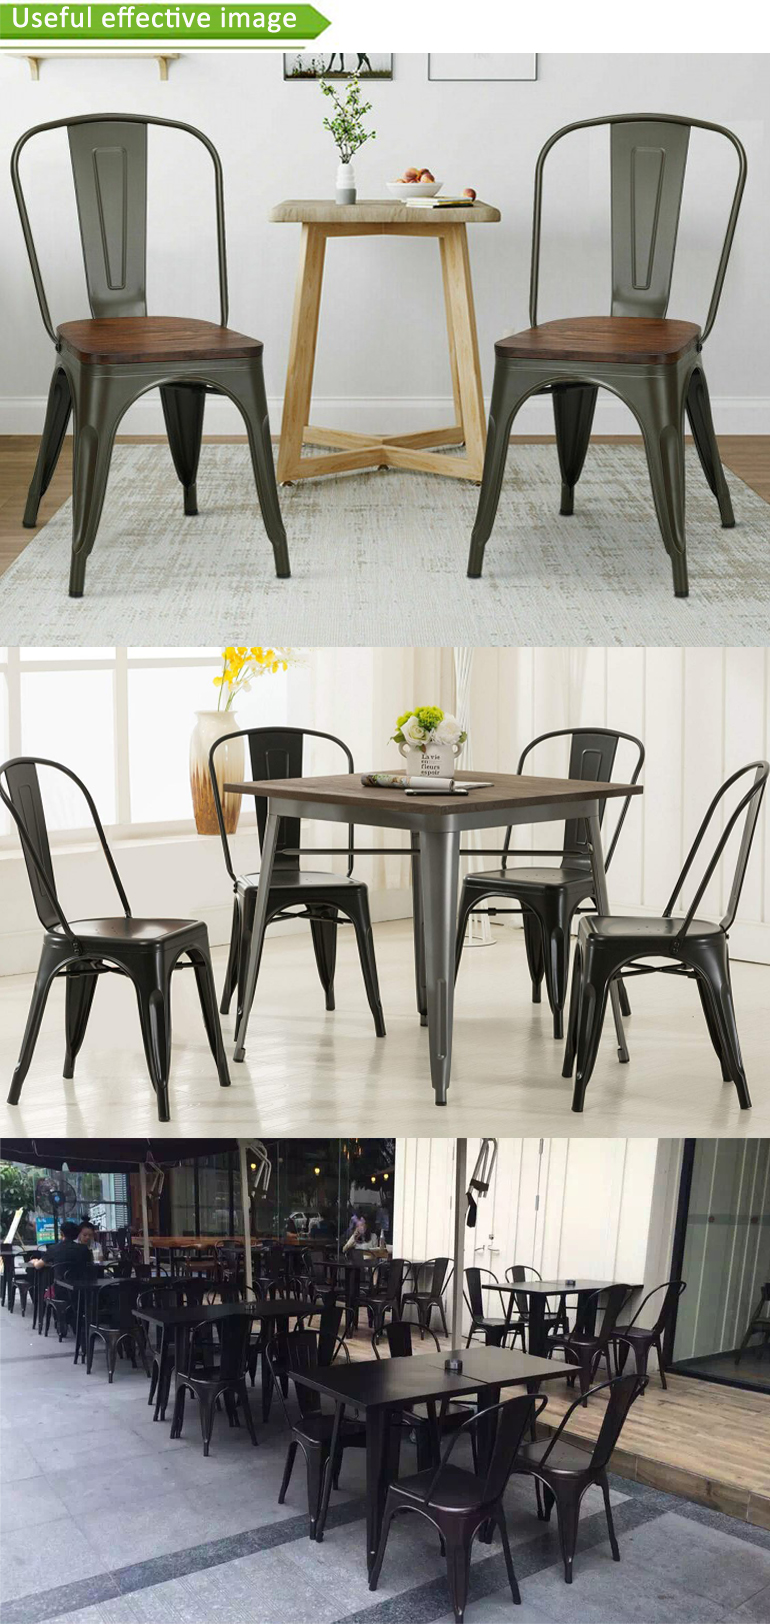 Popular Cheaper Price Powder Coating Commercial Furniture restaurant vintage Industrial metal dining chair